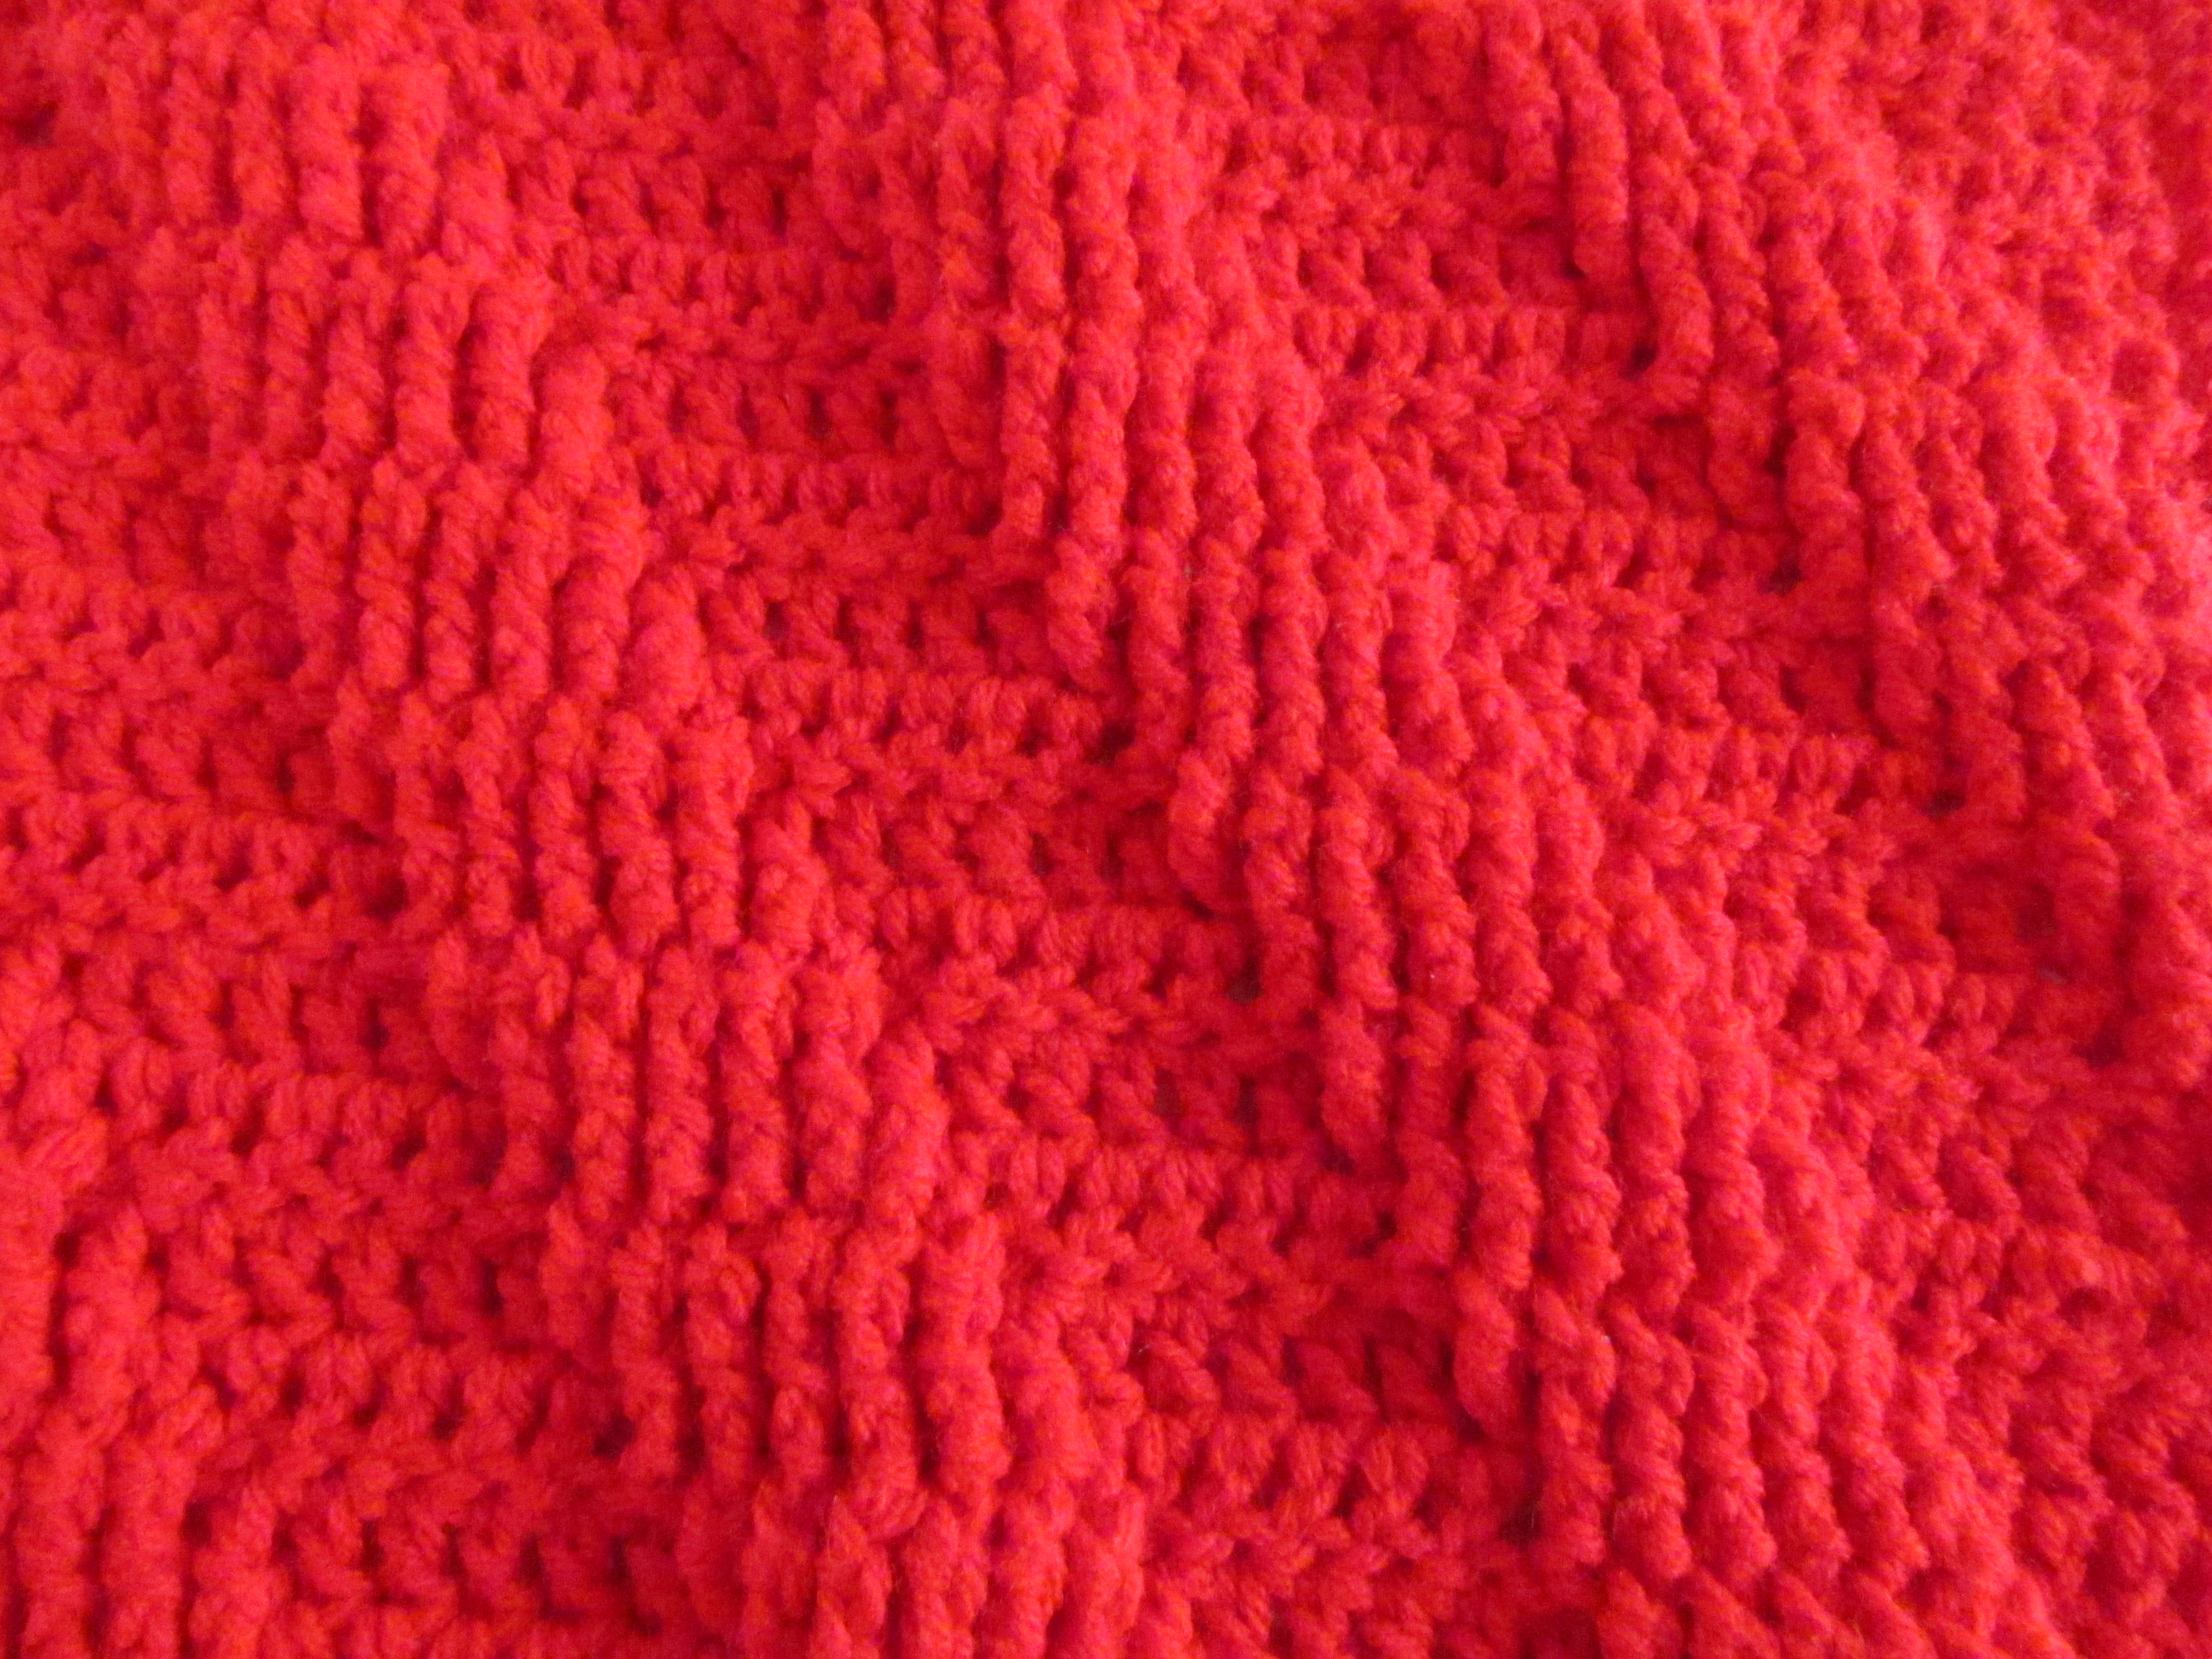 Crochet Stitches With Texture : Free Textured Crochet Afghan Patterns